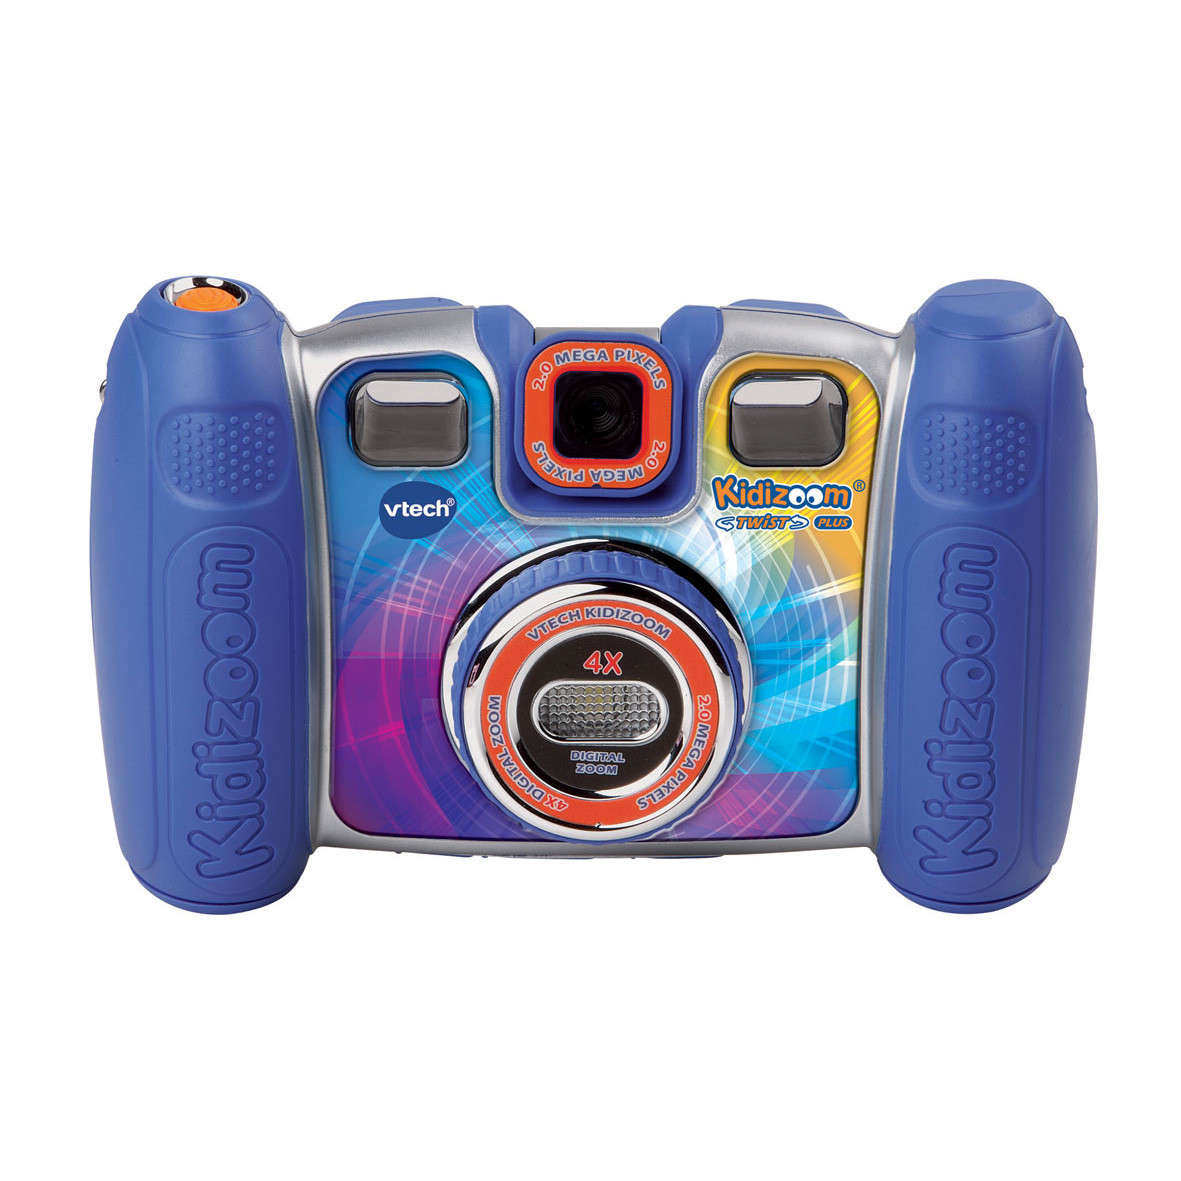 Vtech Kidizoom Twist Plus Digital Camera